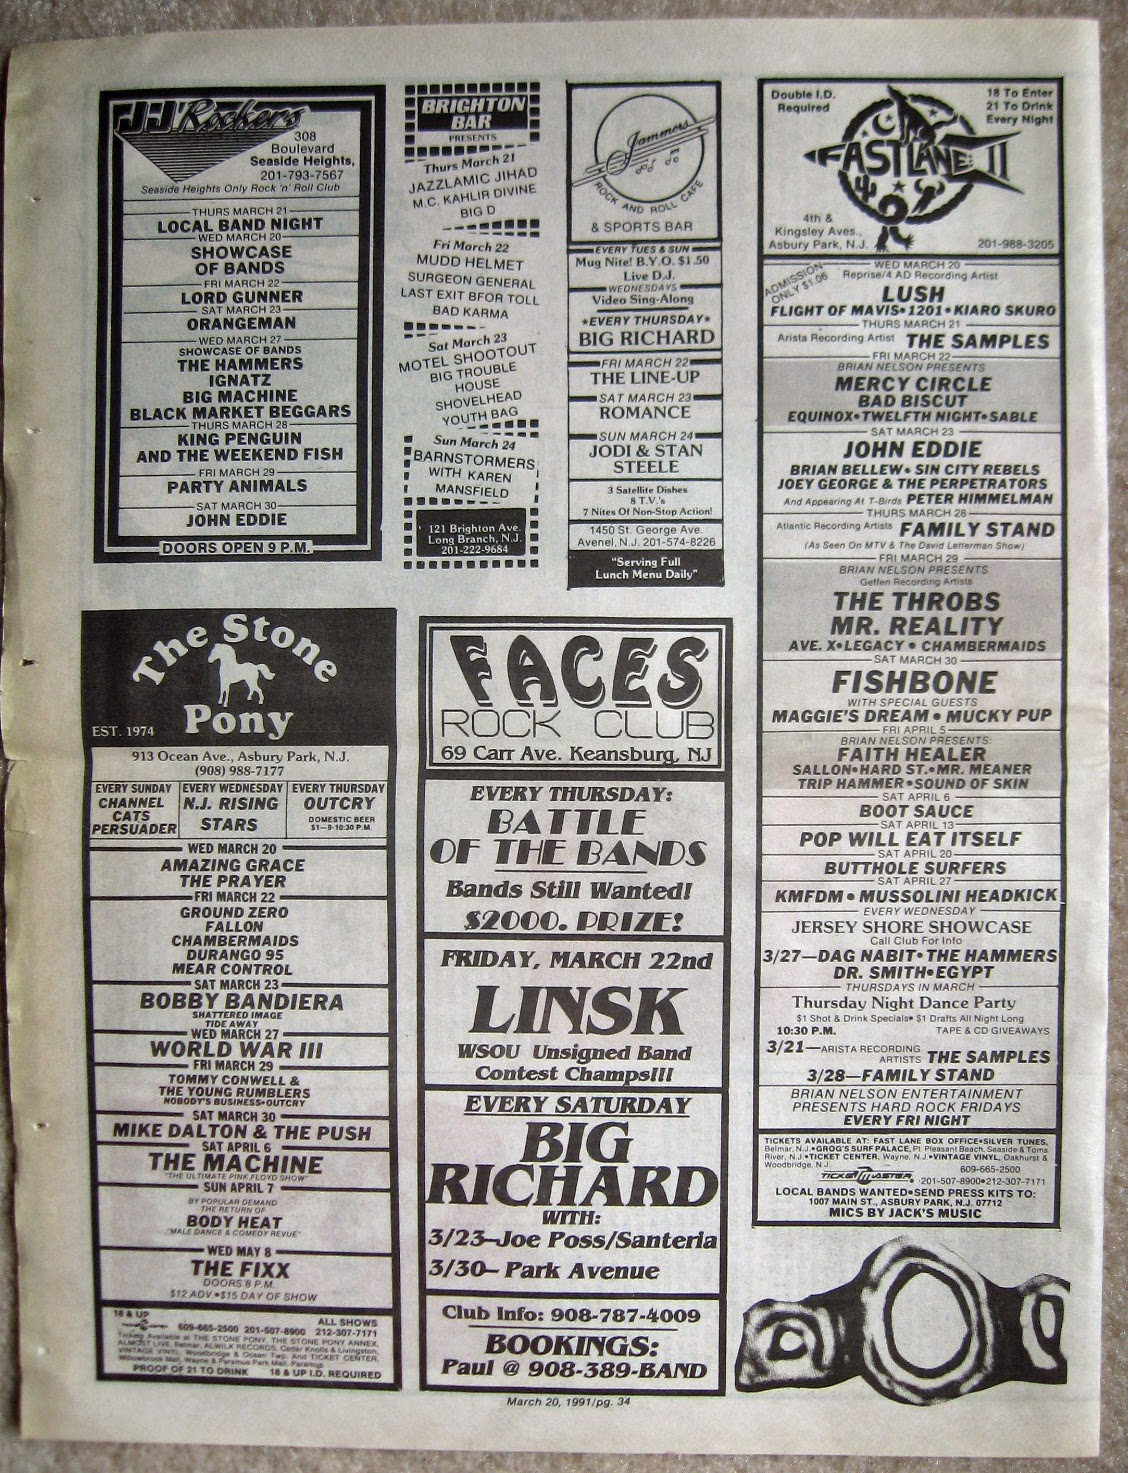 JJ Rockers - The Stone Pony - Brighton Bar - Jammers - Faces - Fastlane 2 band line ups EC Rocker 1991